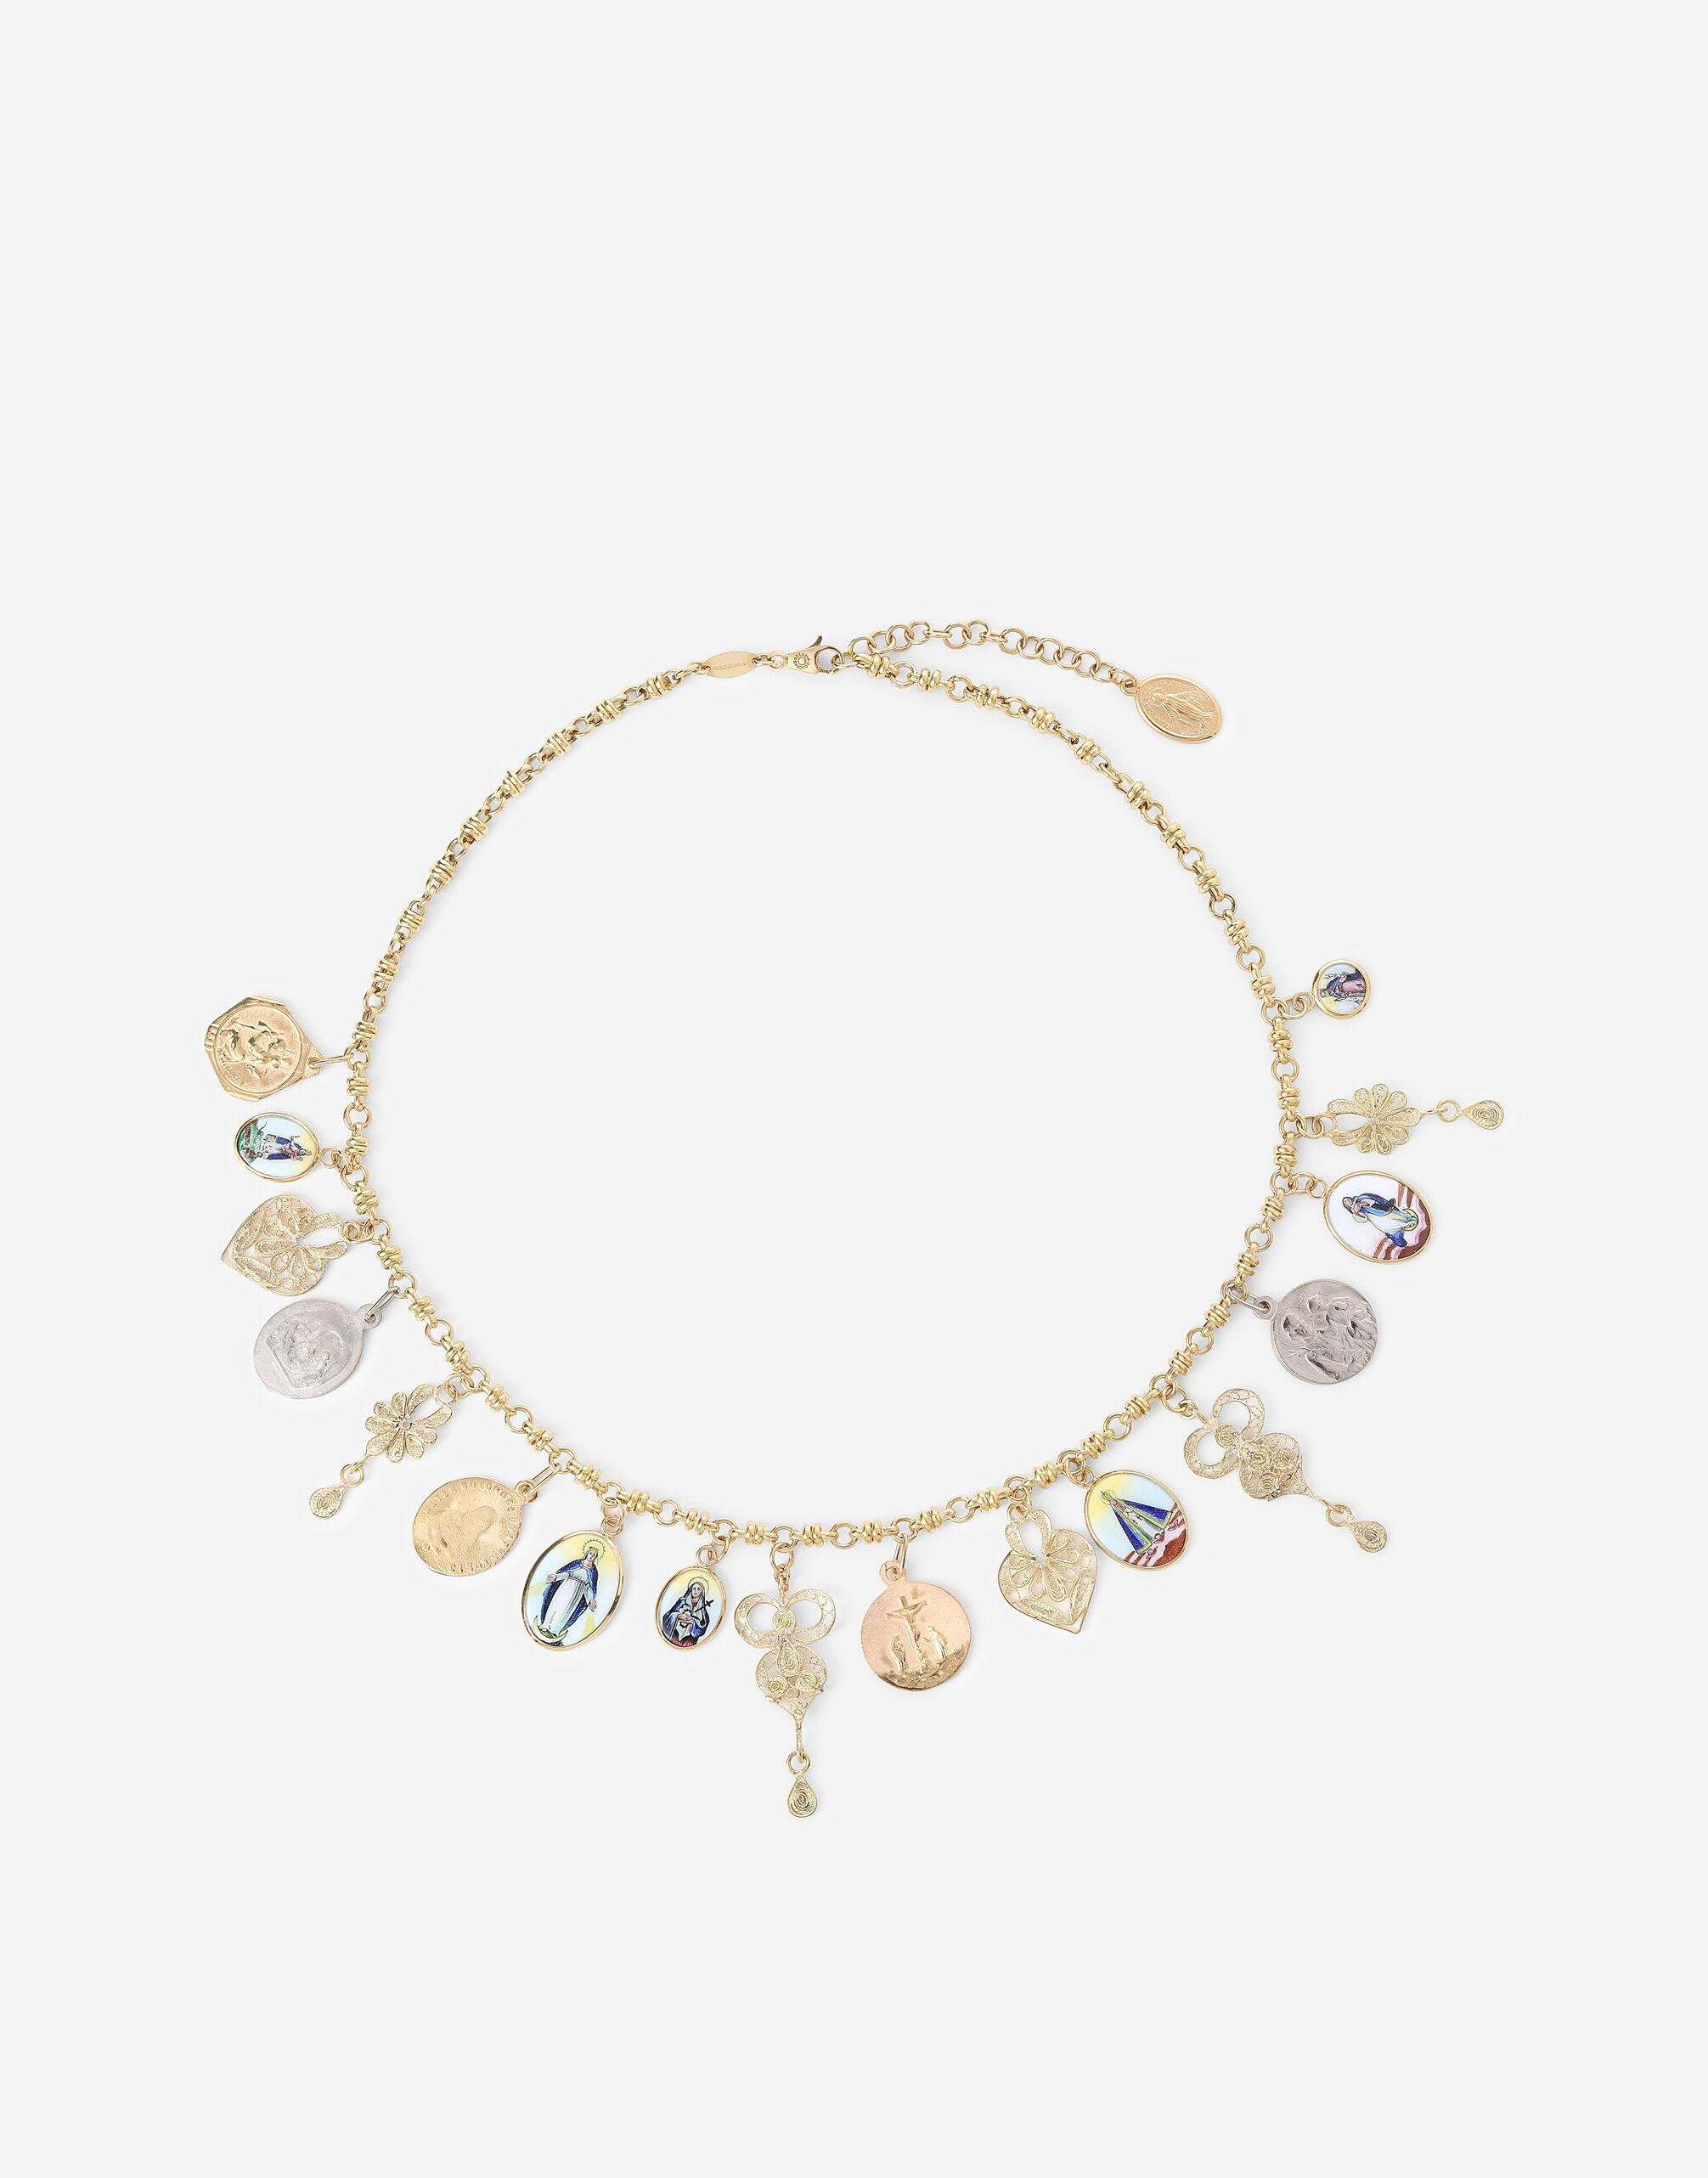 D.D. necklace in yellow 18kt gold with antique ceramic miniatures